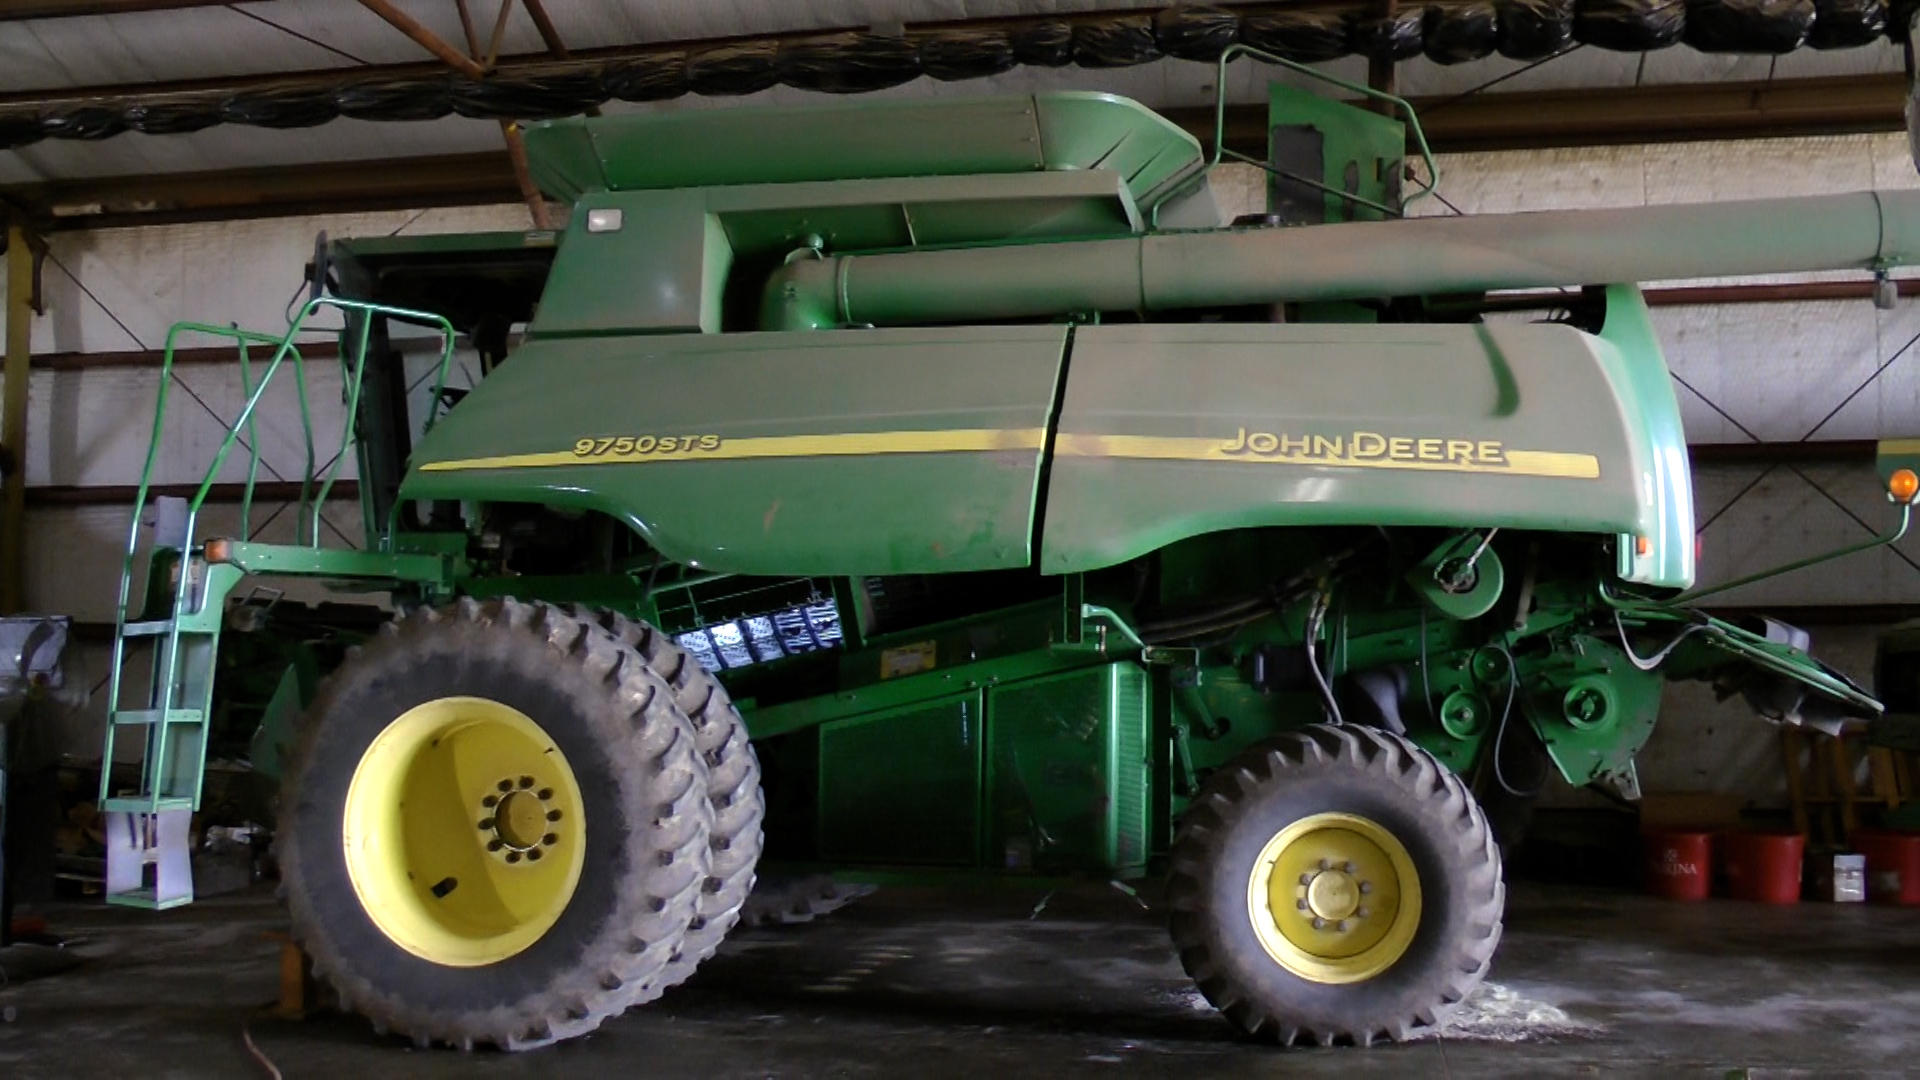 John Deere combine in shop